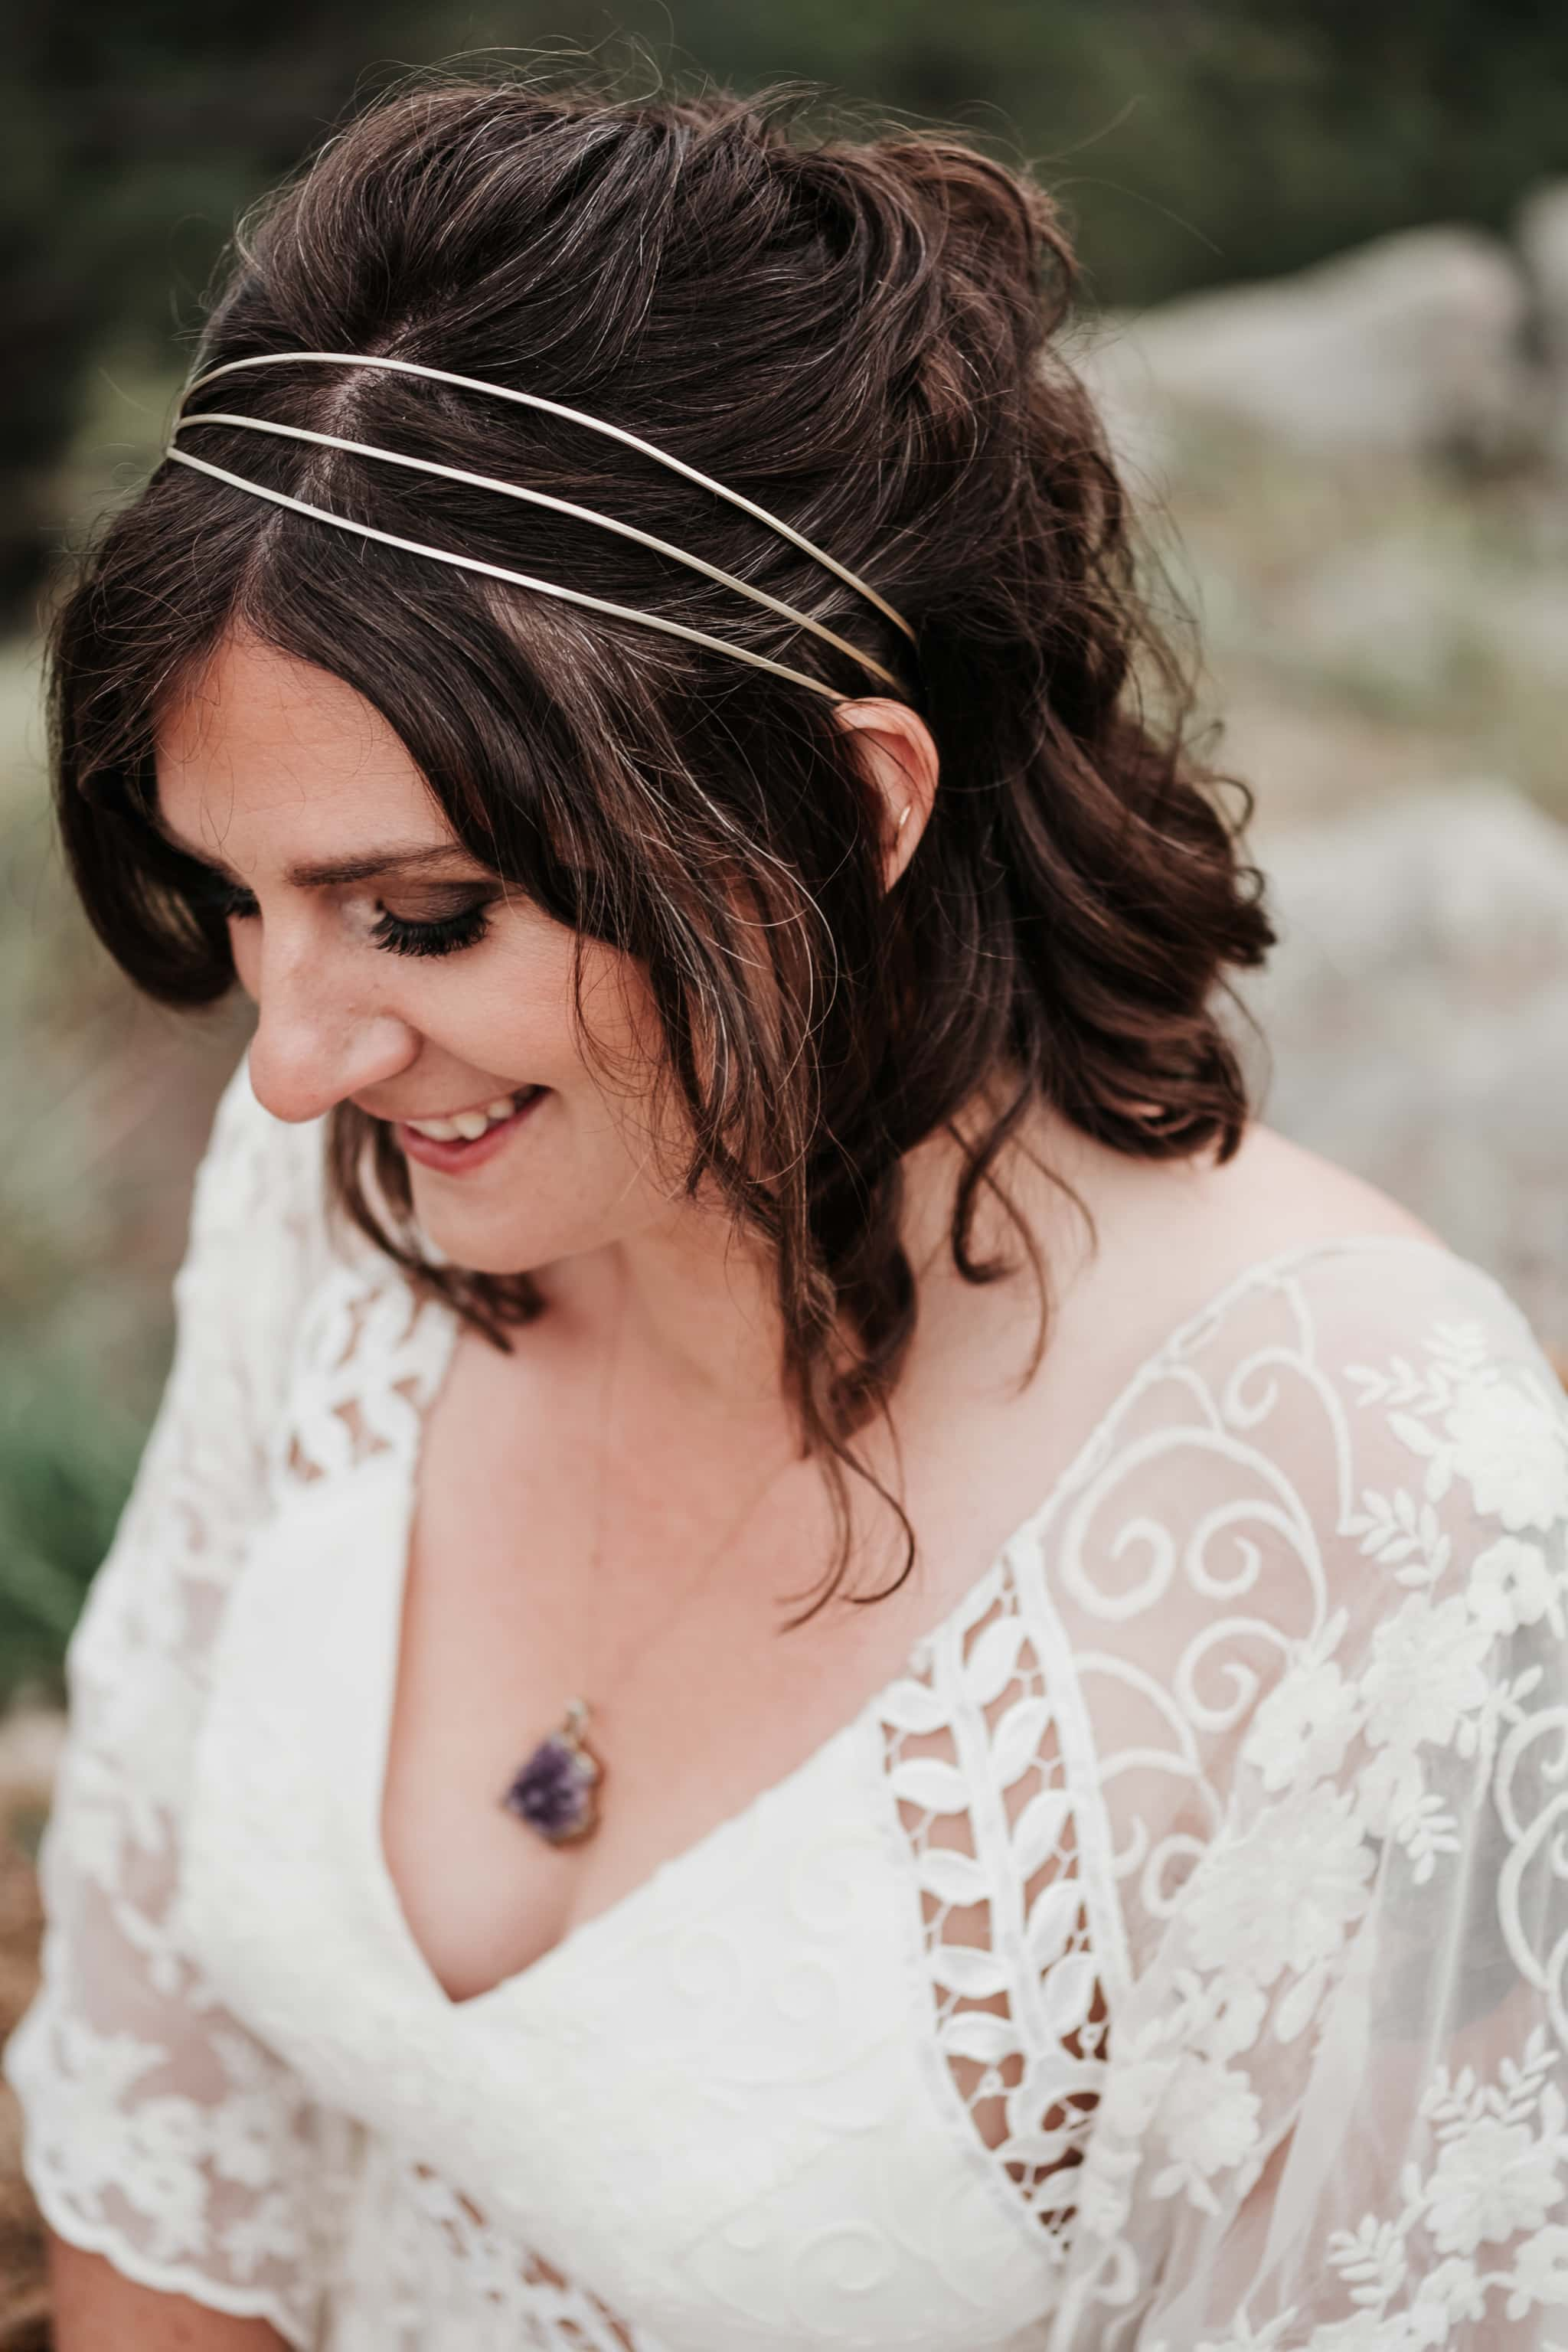 Bride wearing headband, amethyst necklace, wedding dress by Rue de Seine bridal